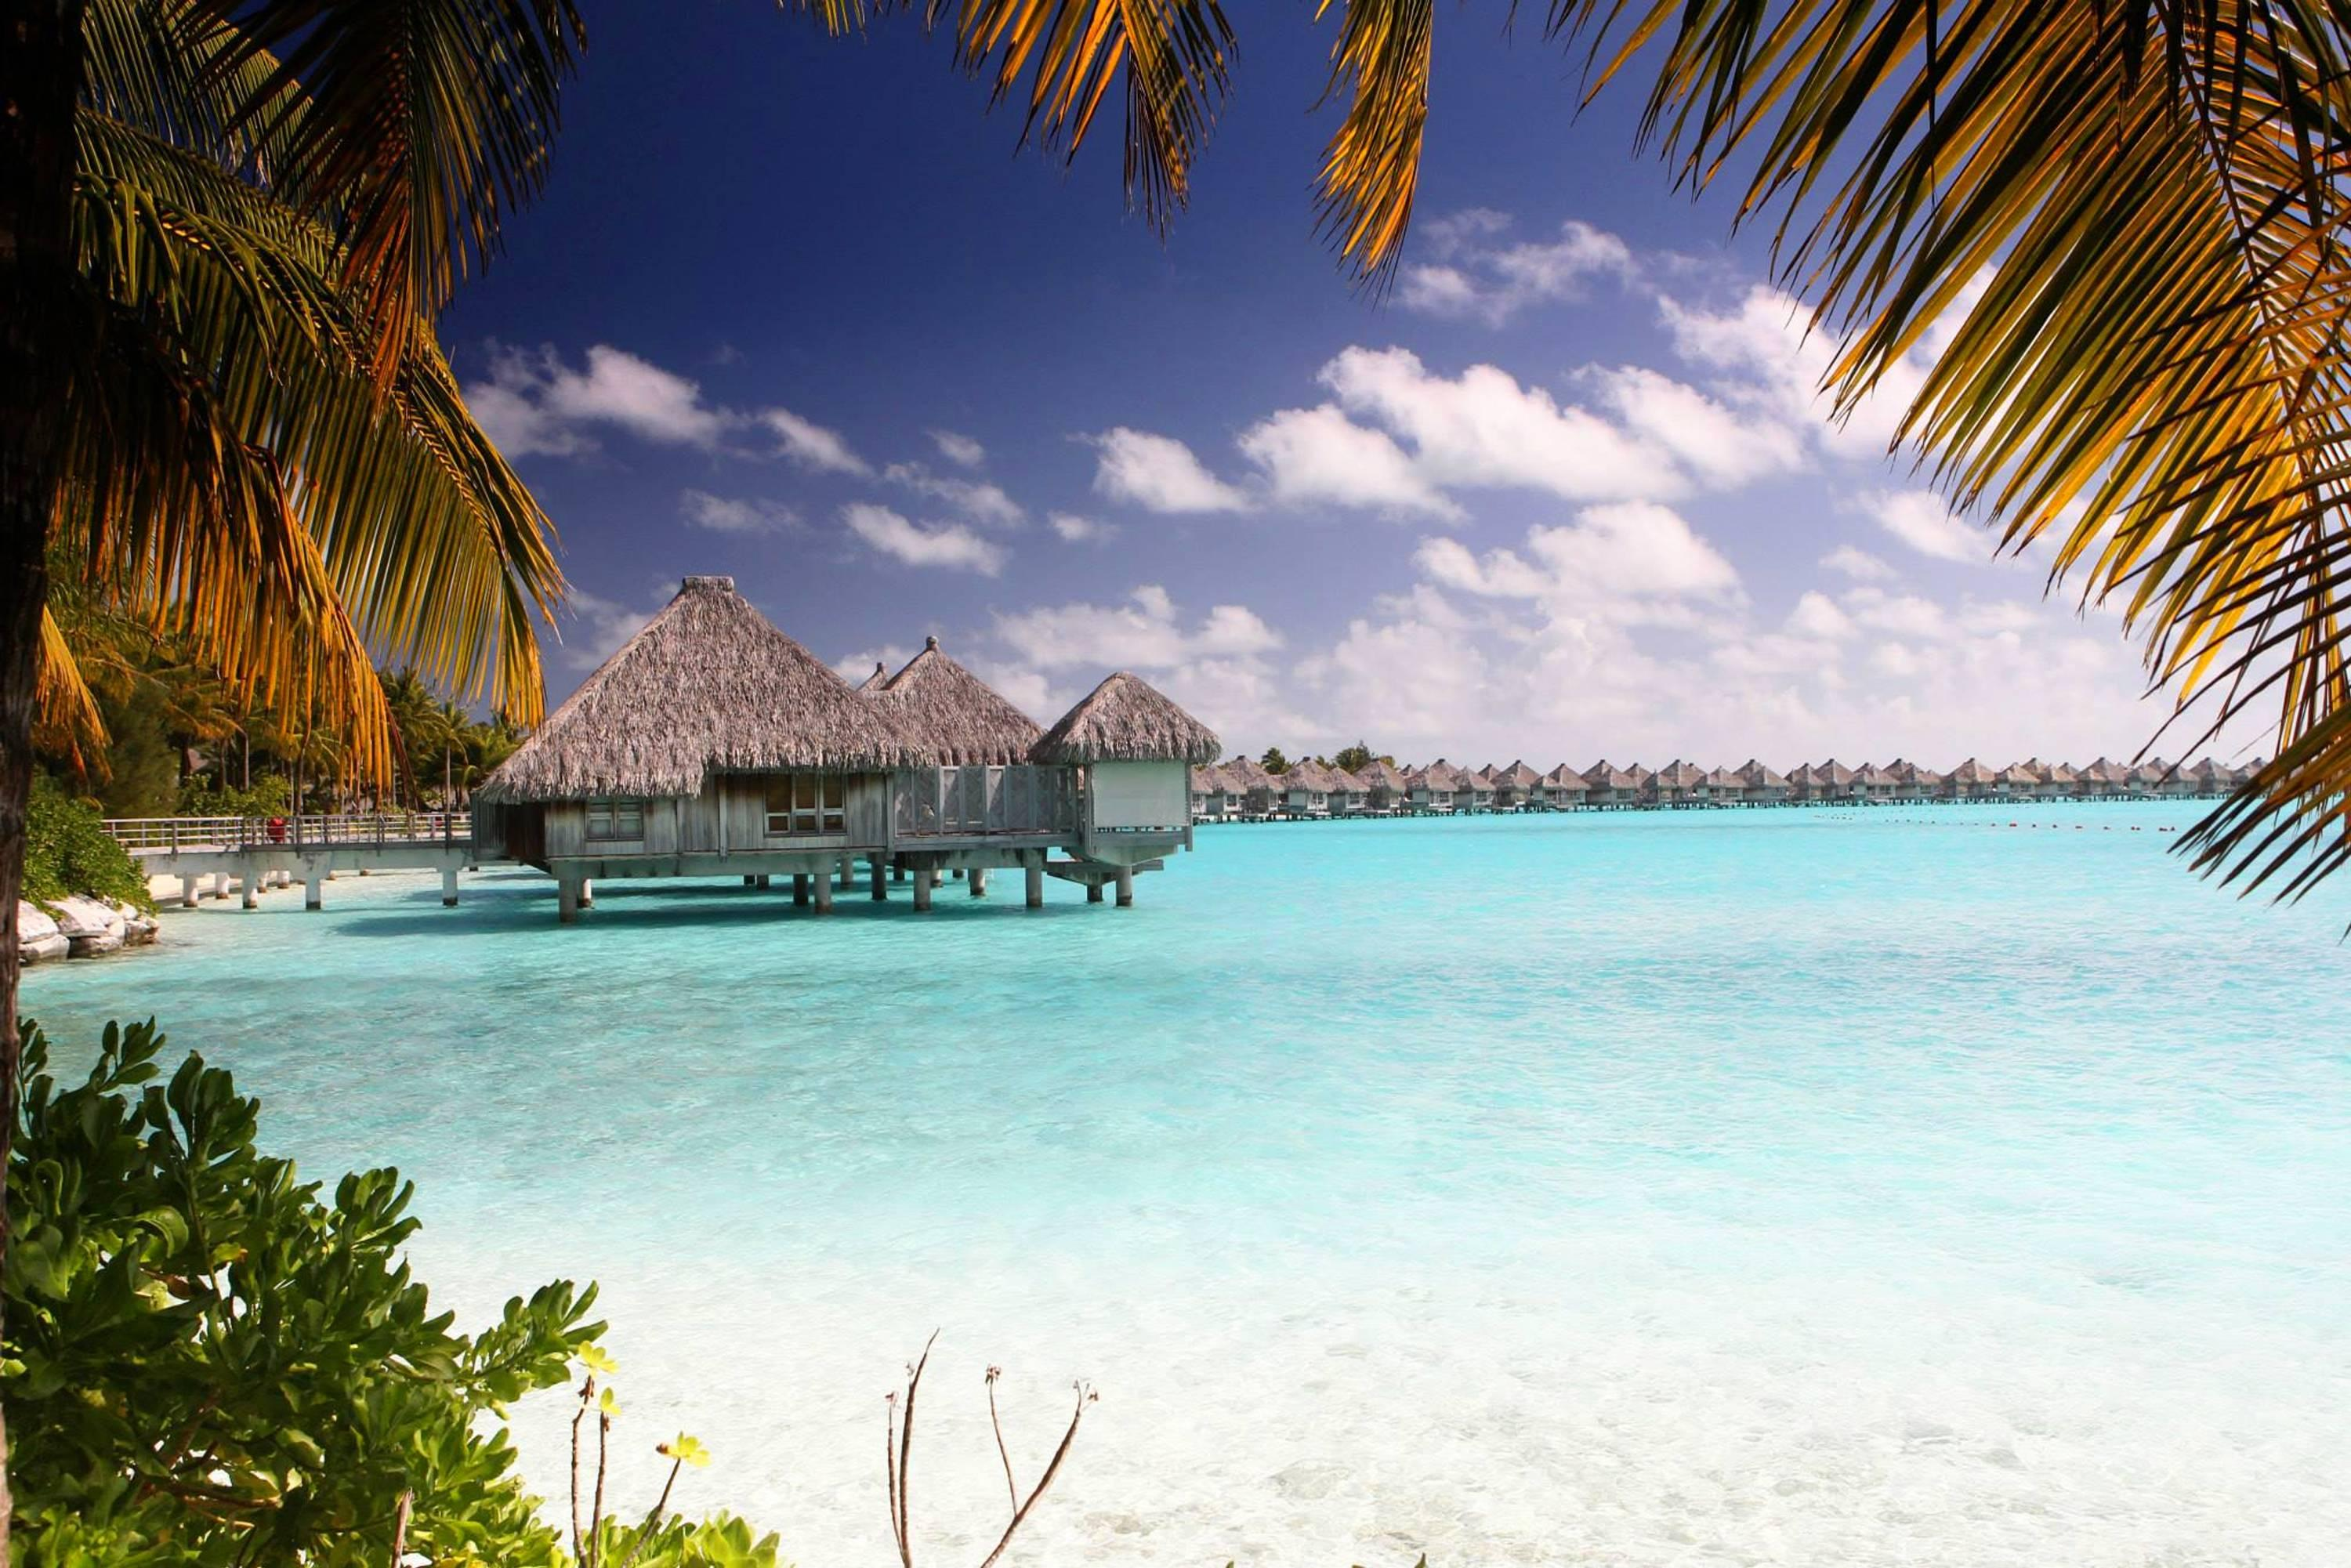 Bora Bora Clear Blue Lagoon Hd Wallpaper Wallpaper List 3000x2001